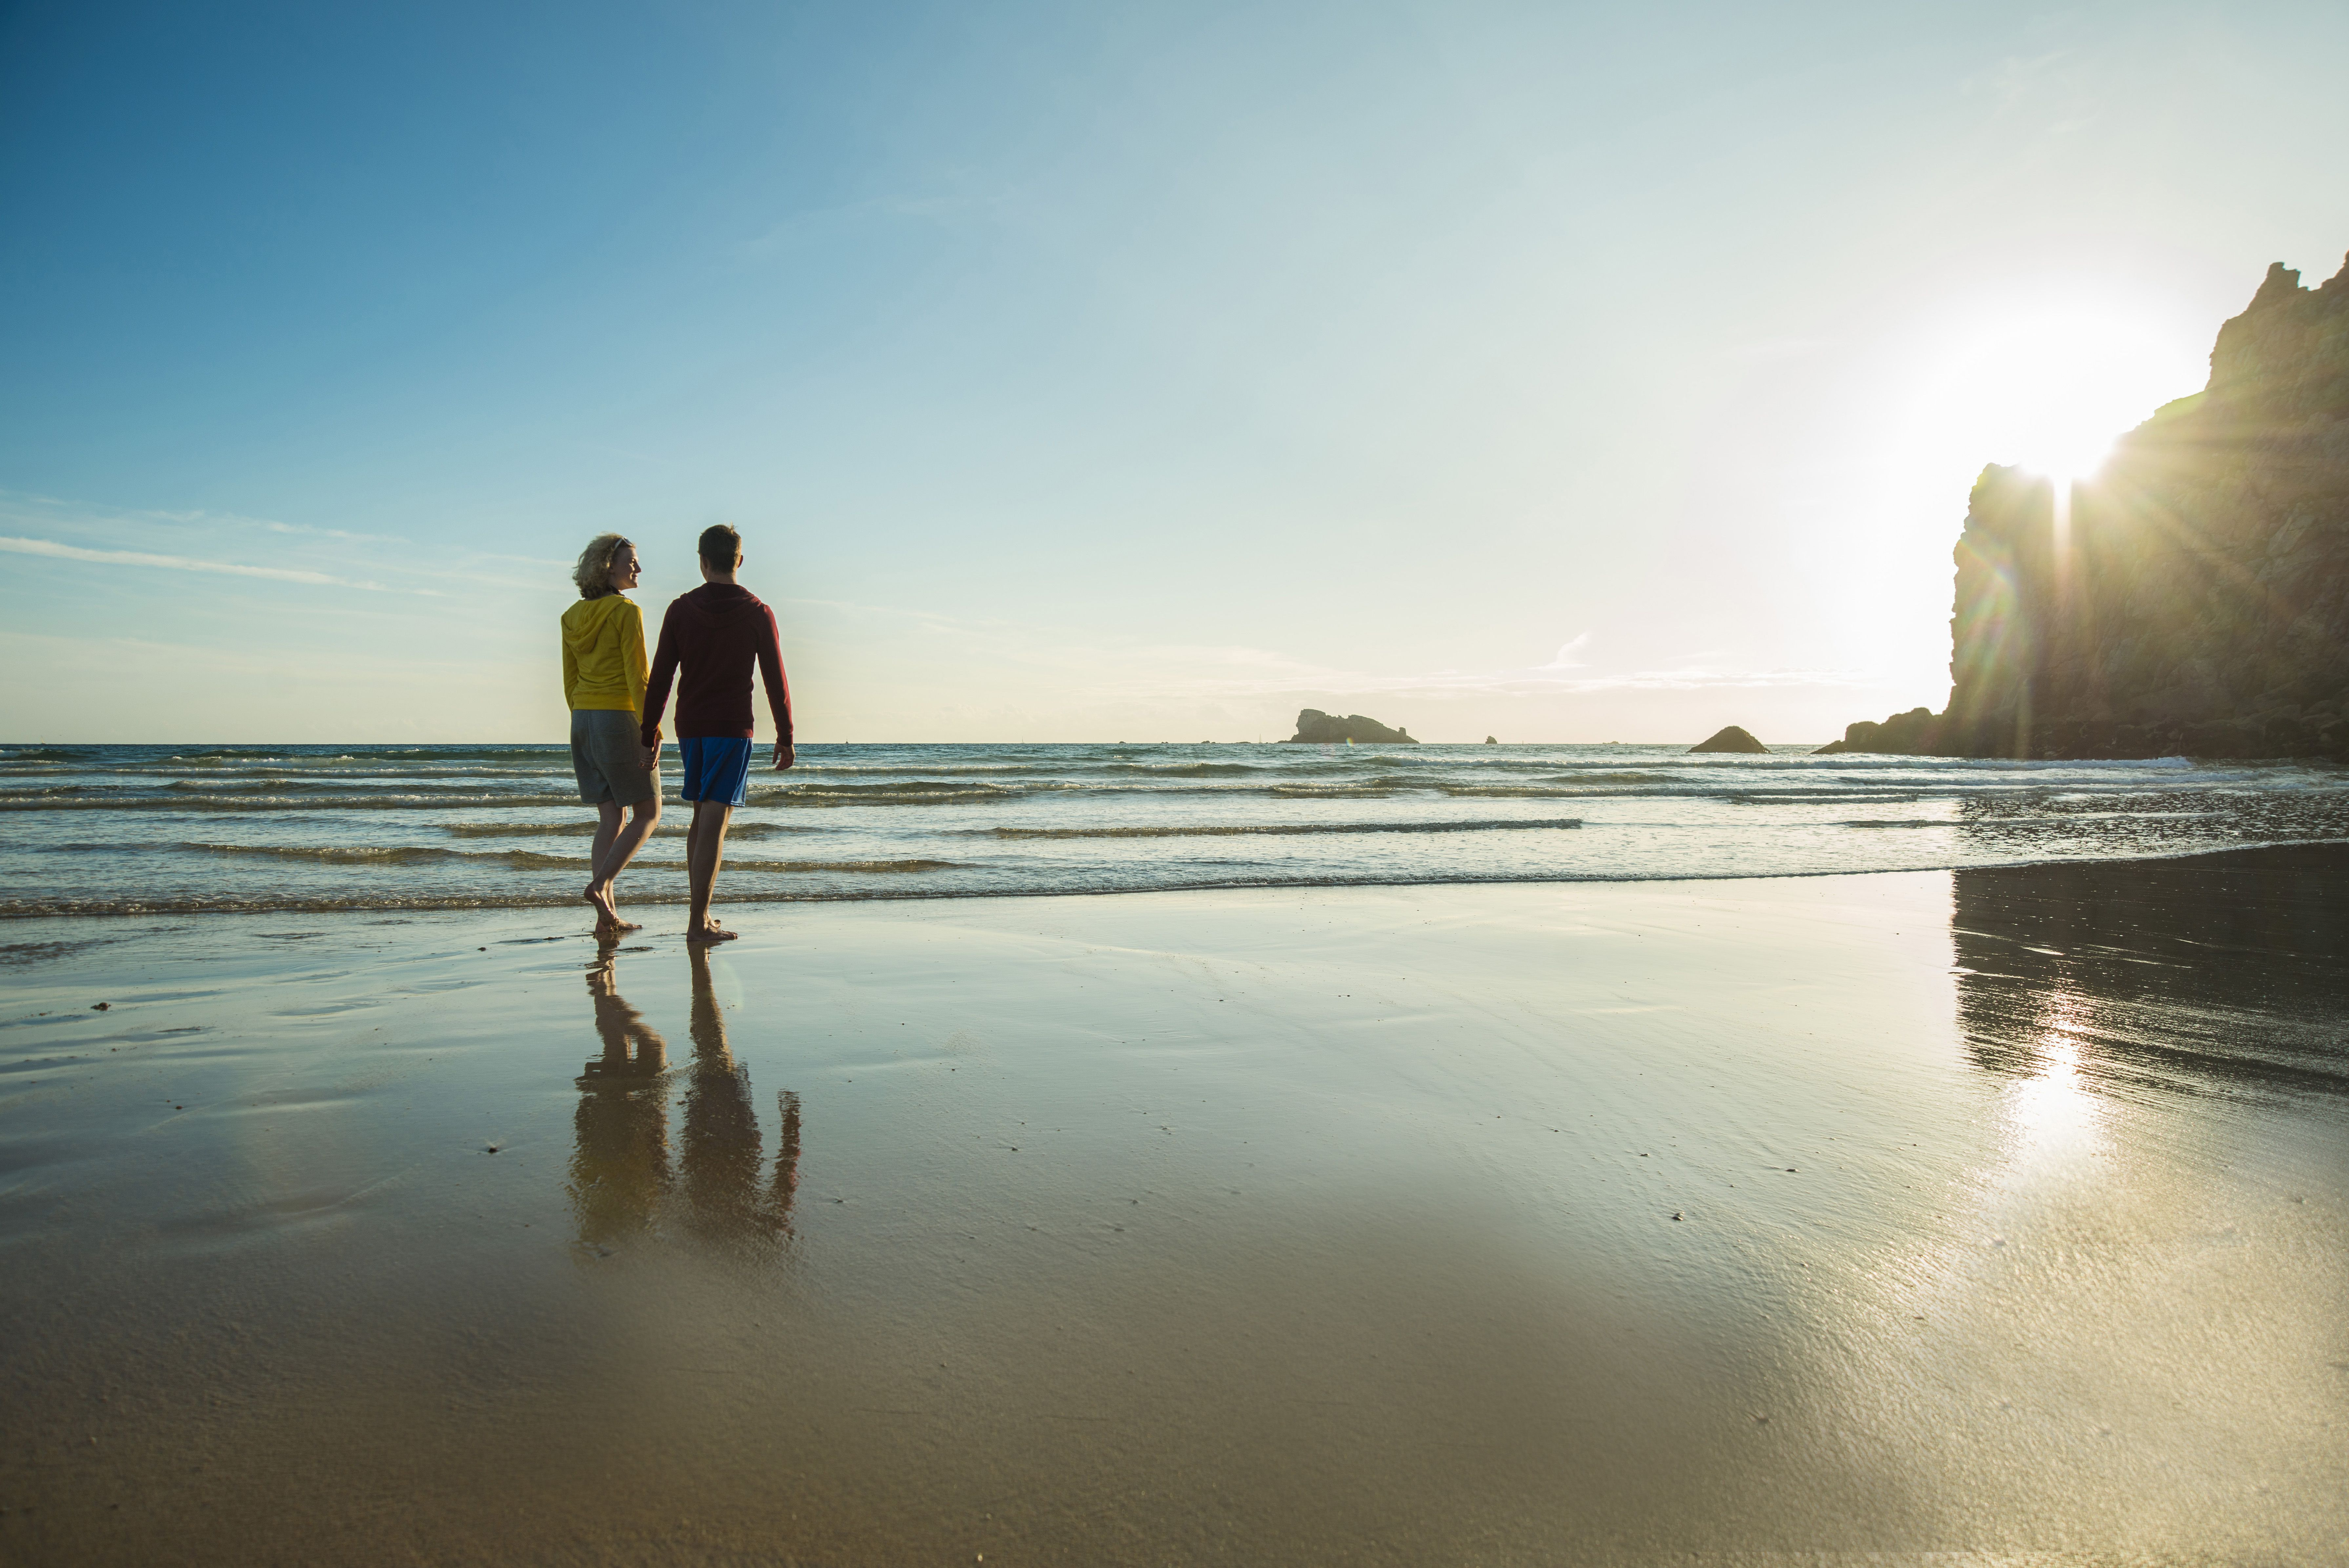 France Brittany Camaret Sur Mer Couple On The Beach Walking Romantic Vacations